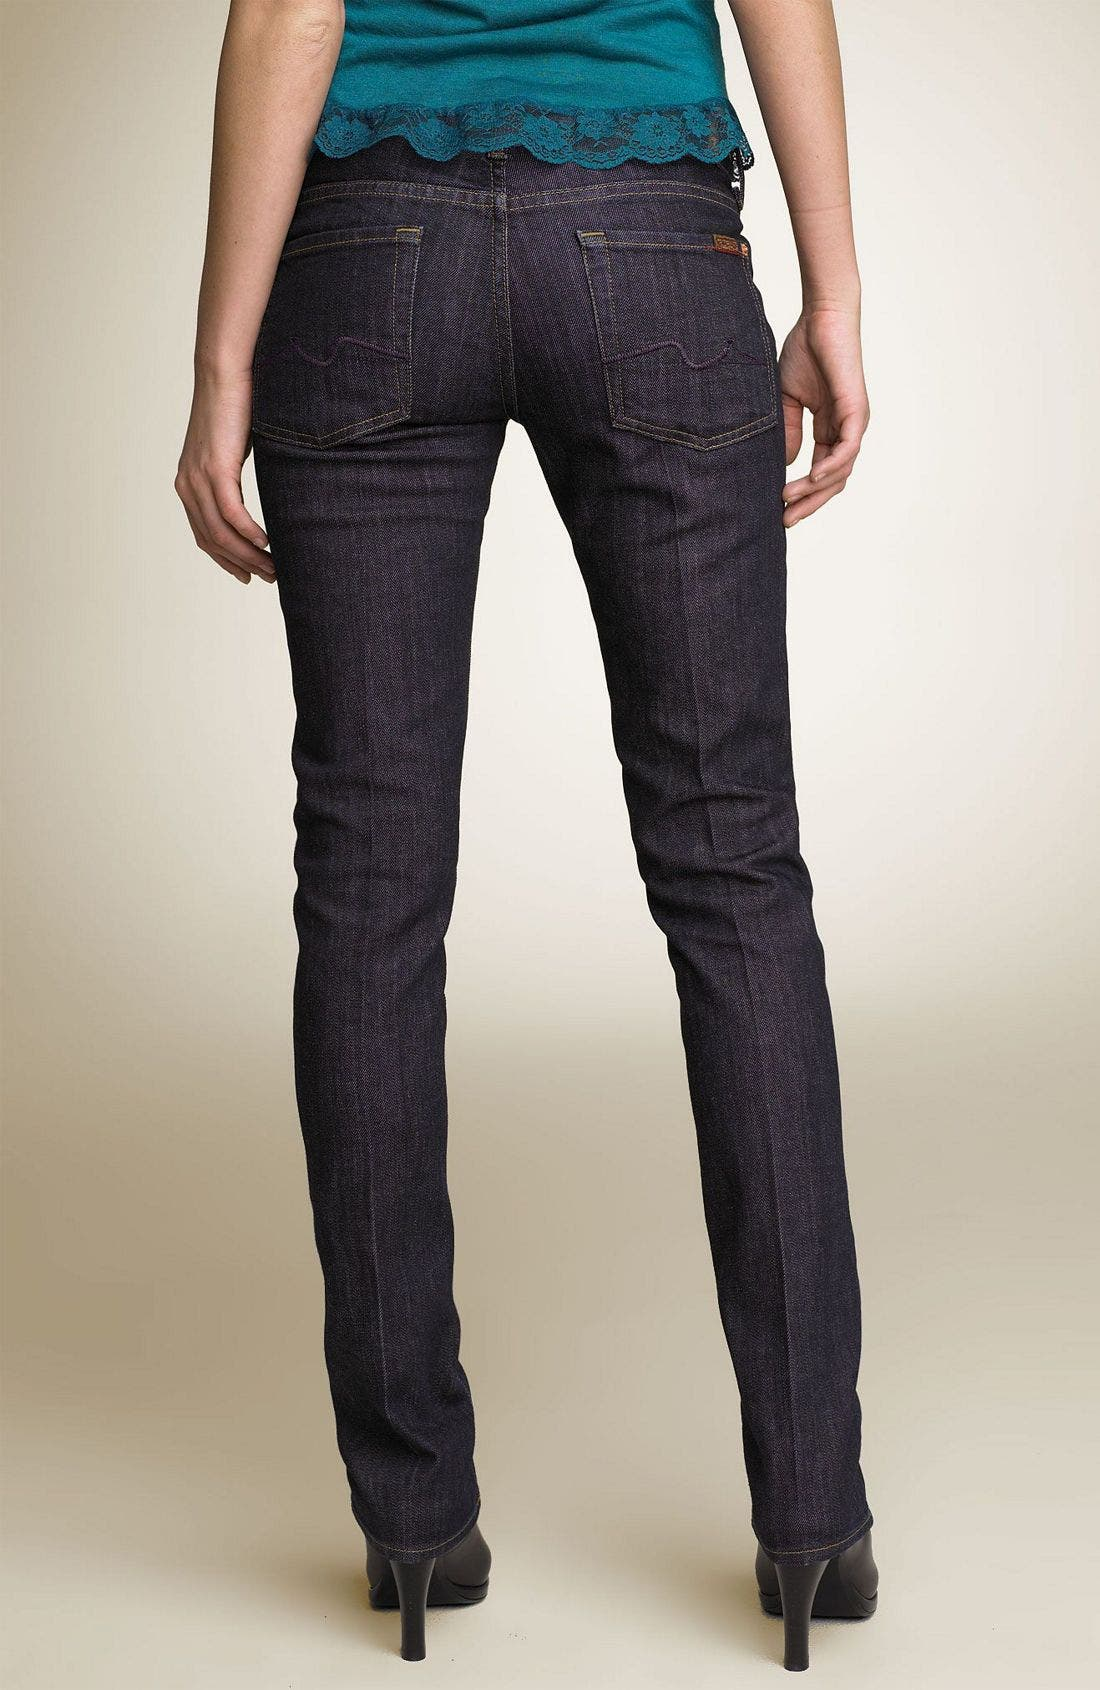 Alternate Image 1 Selected - 7 For All Mankind® 'Roxanne' Skinny Stretch Jeans (Mercer Wash)